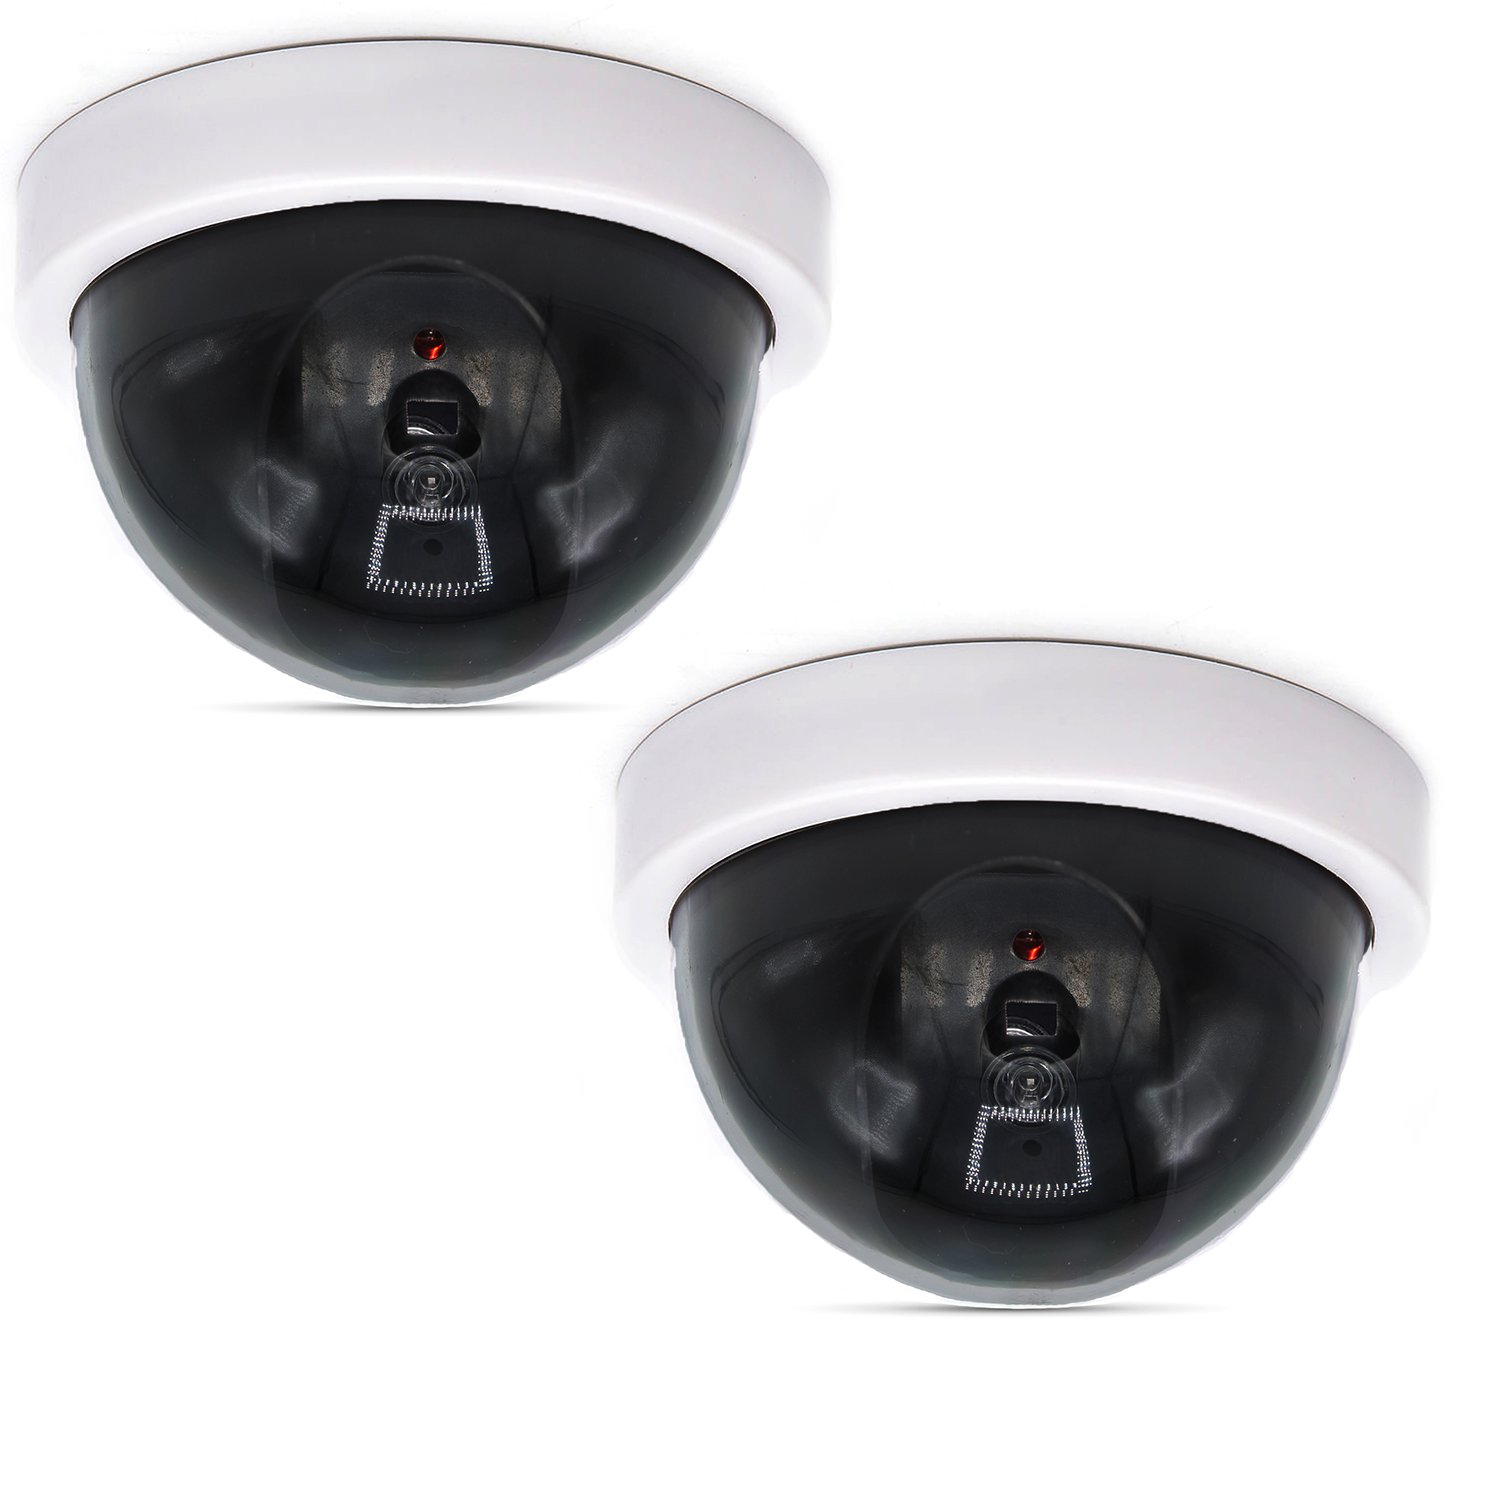 WALI Dummy Fake Security CCTV Dome Camera with Flashing Red LED Light SDW 2